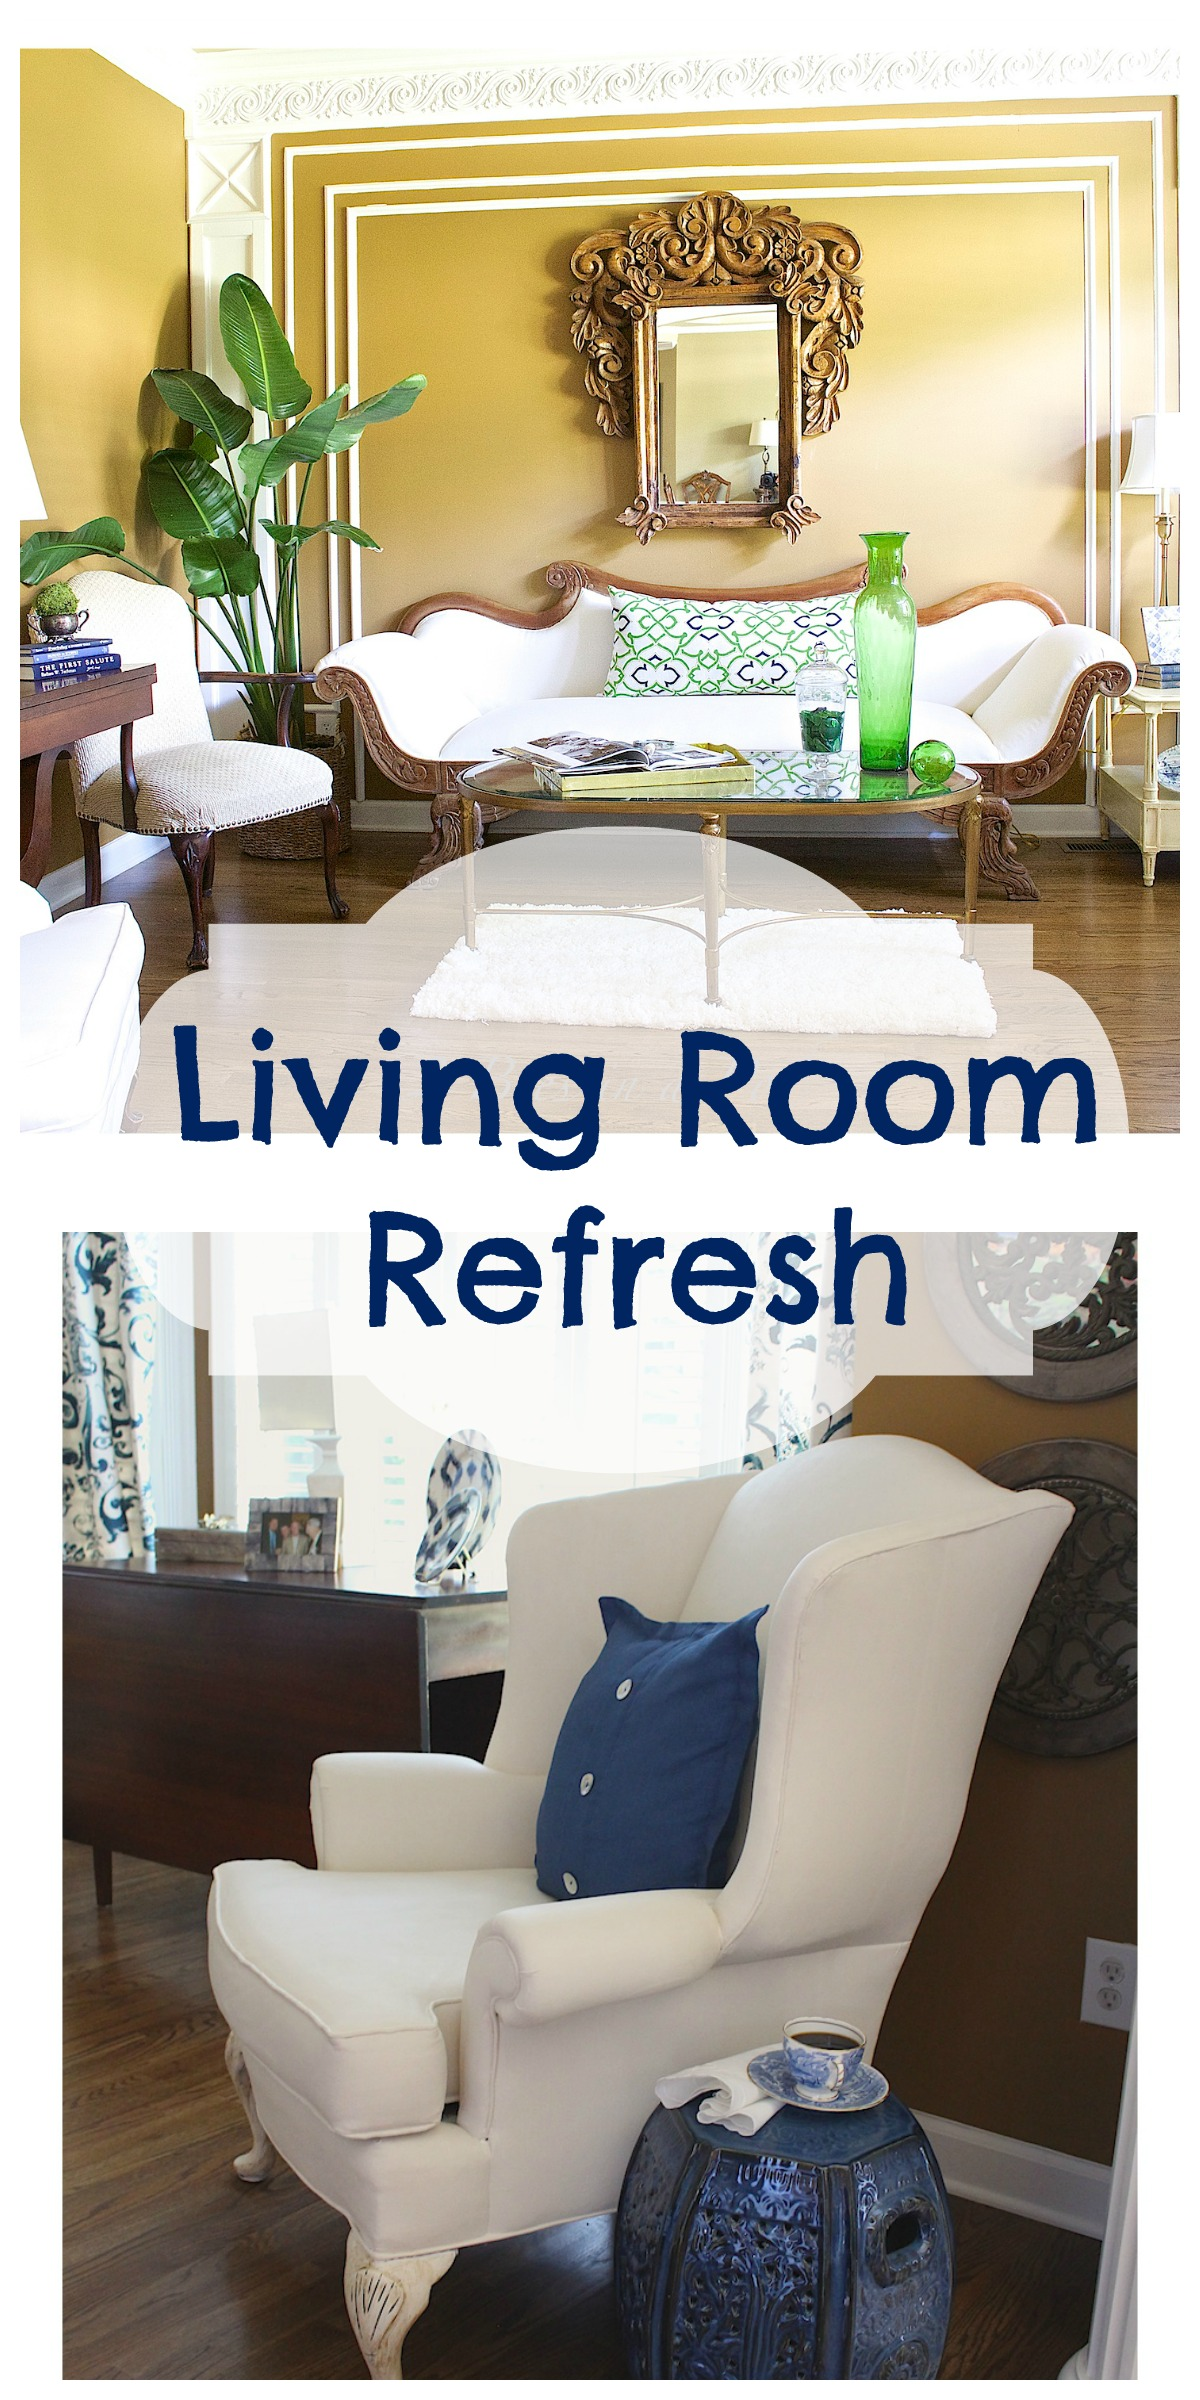 Living Room Refresh Collage